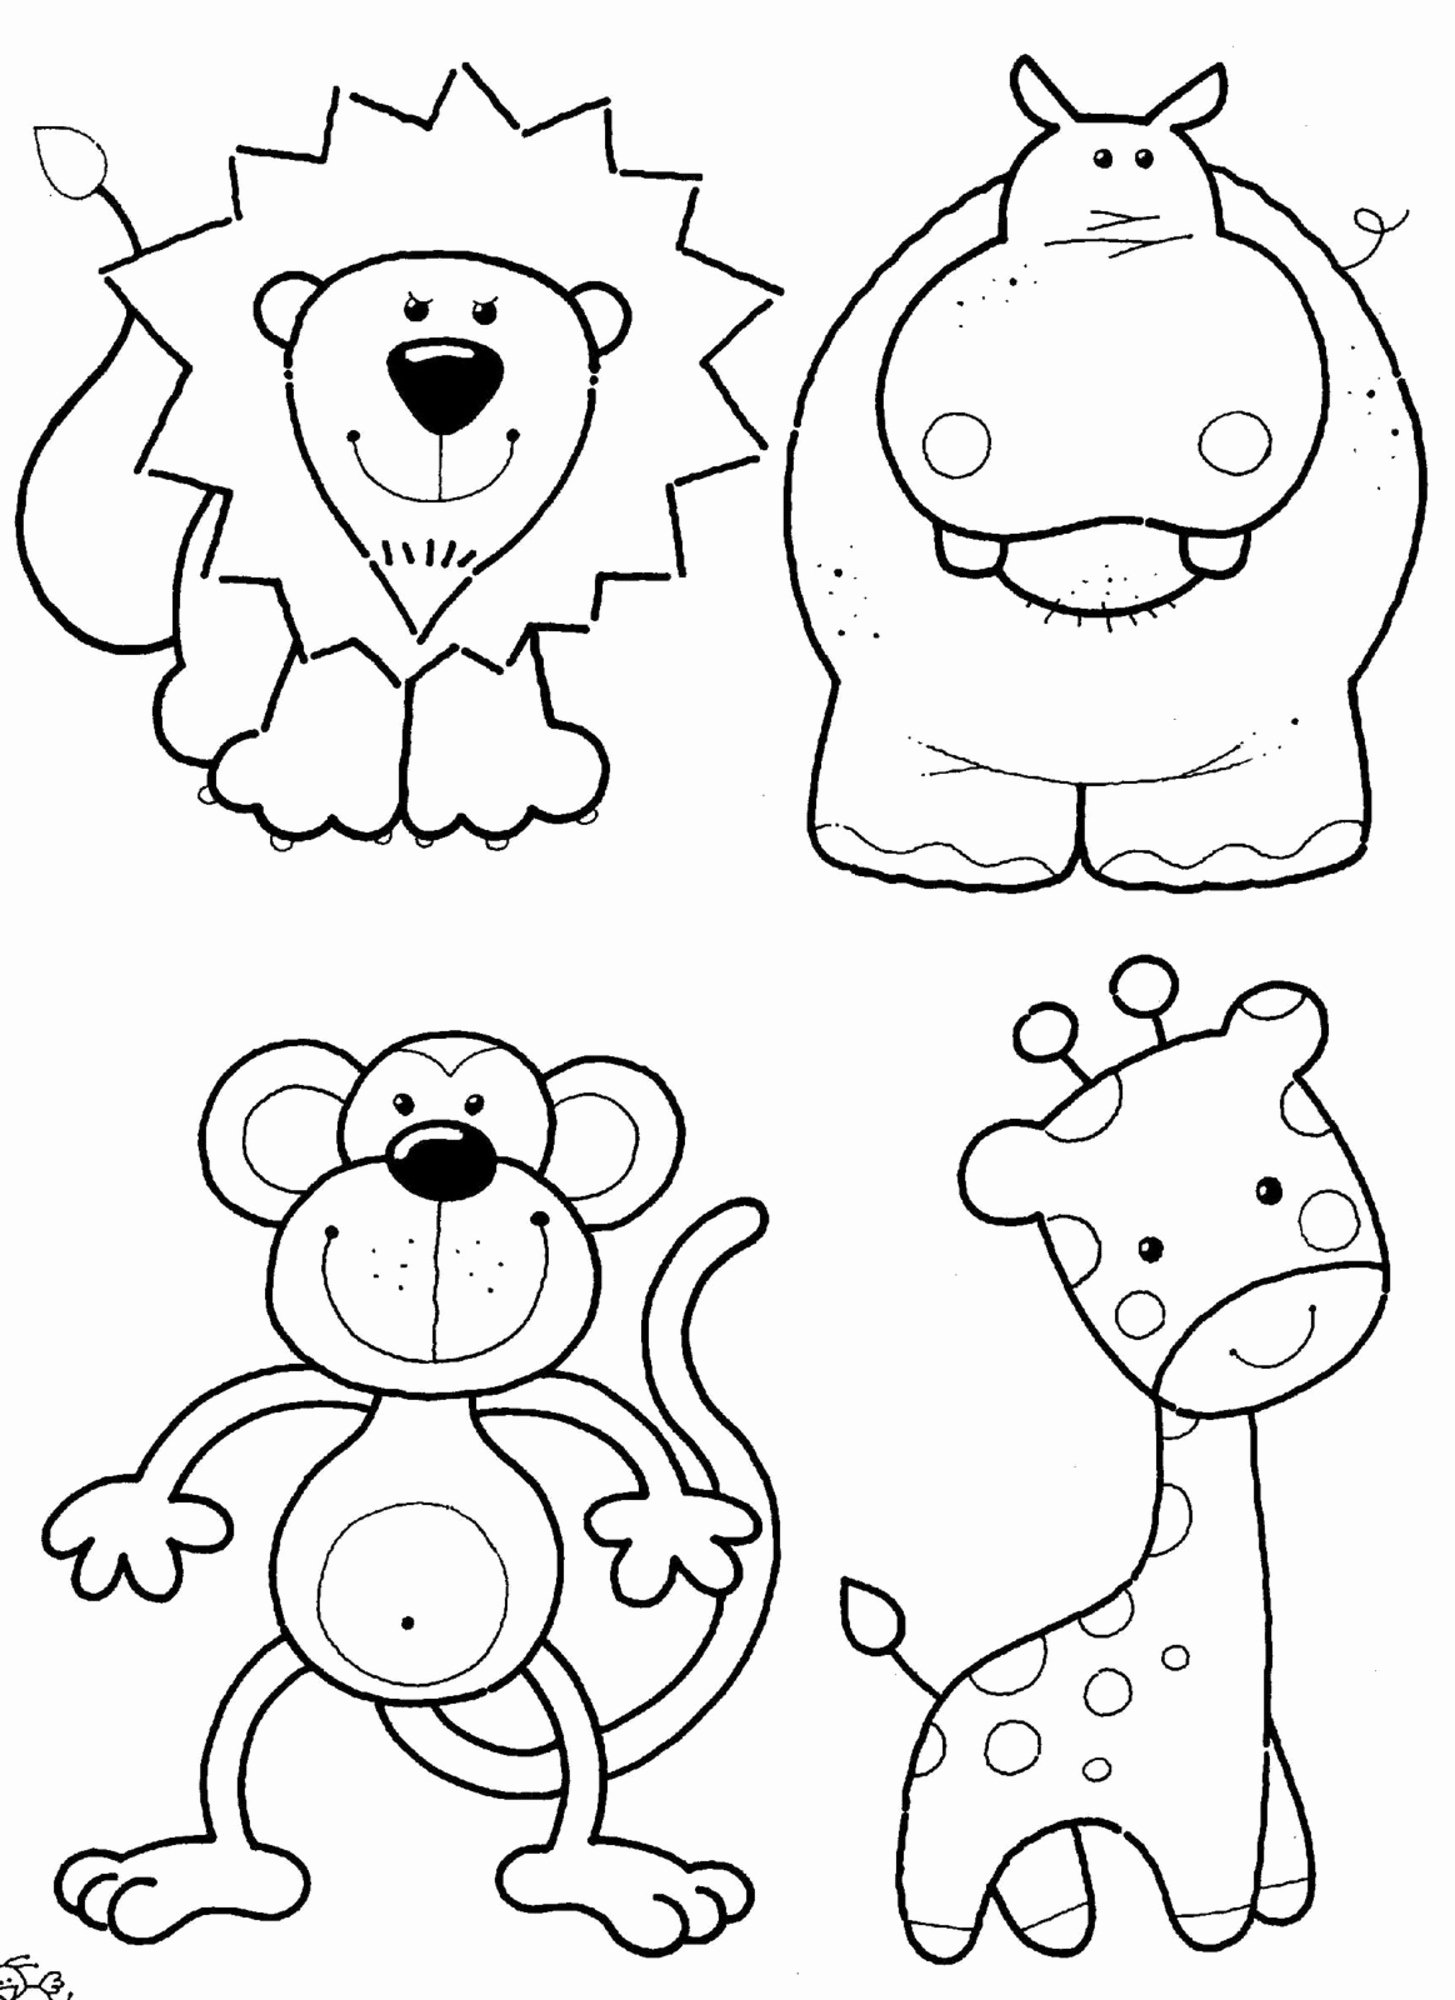 Zoo themed Worksheets for Preschoolers Printable Coloring Book Cute Animals Zoo Fabulous for themed Math